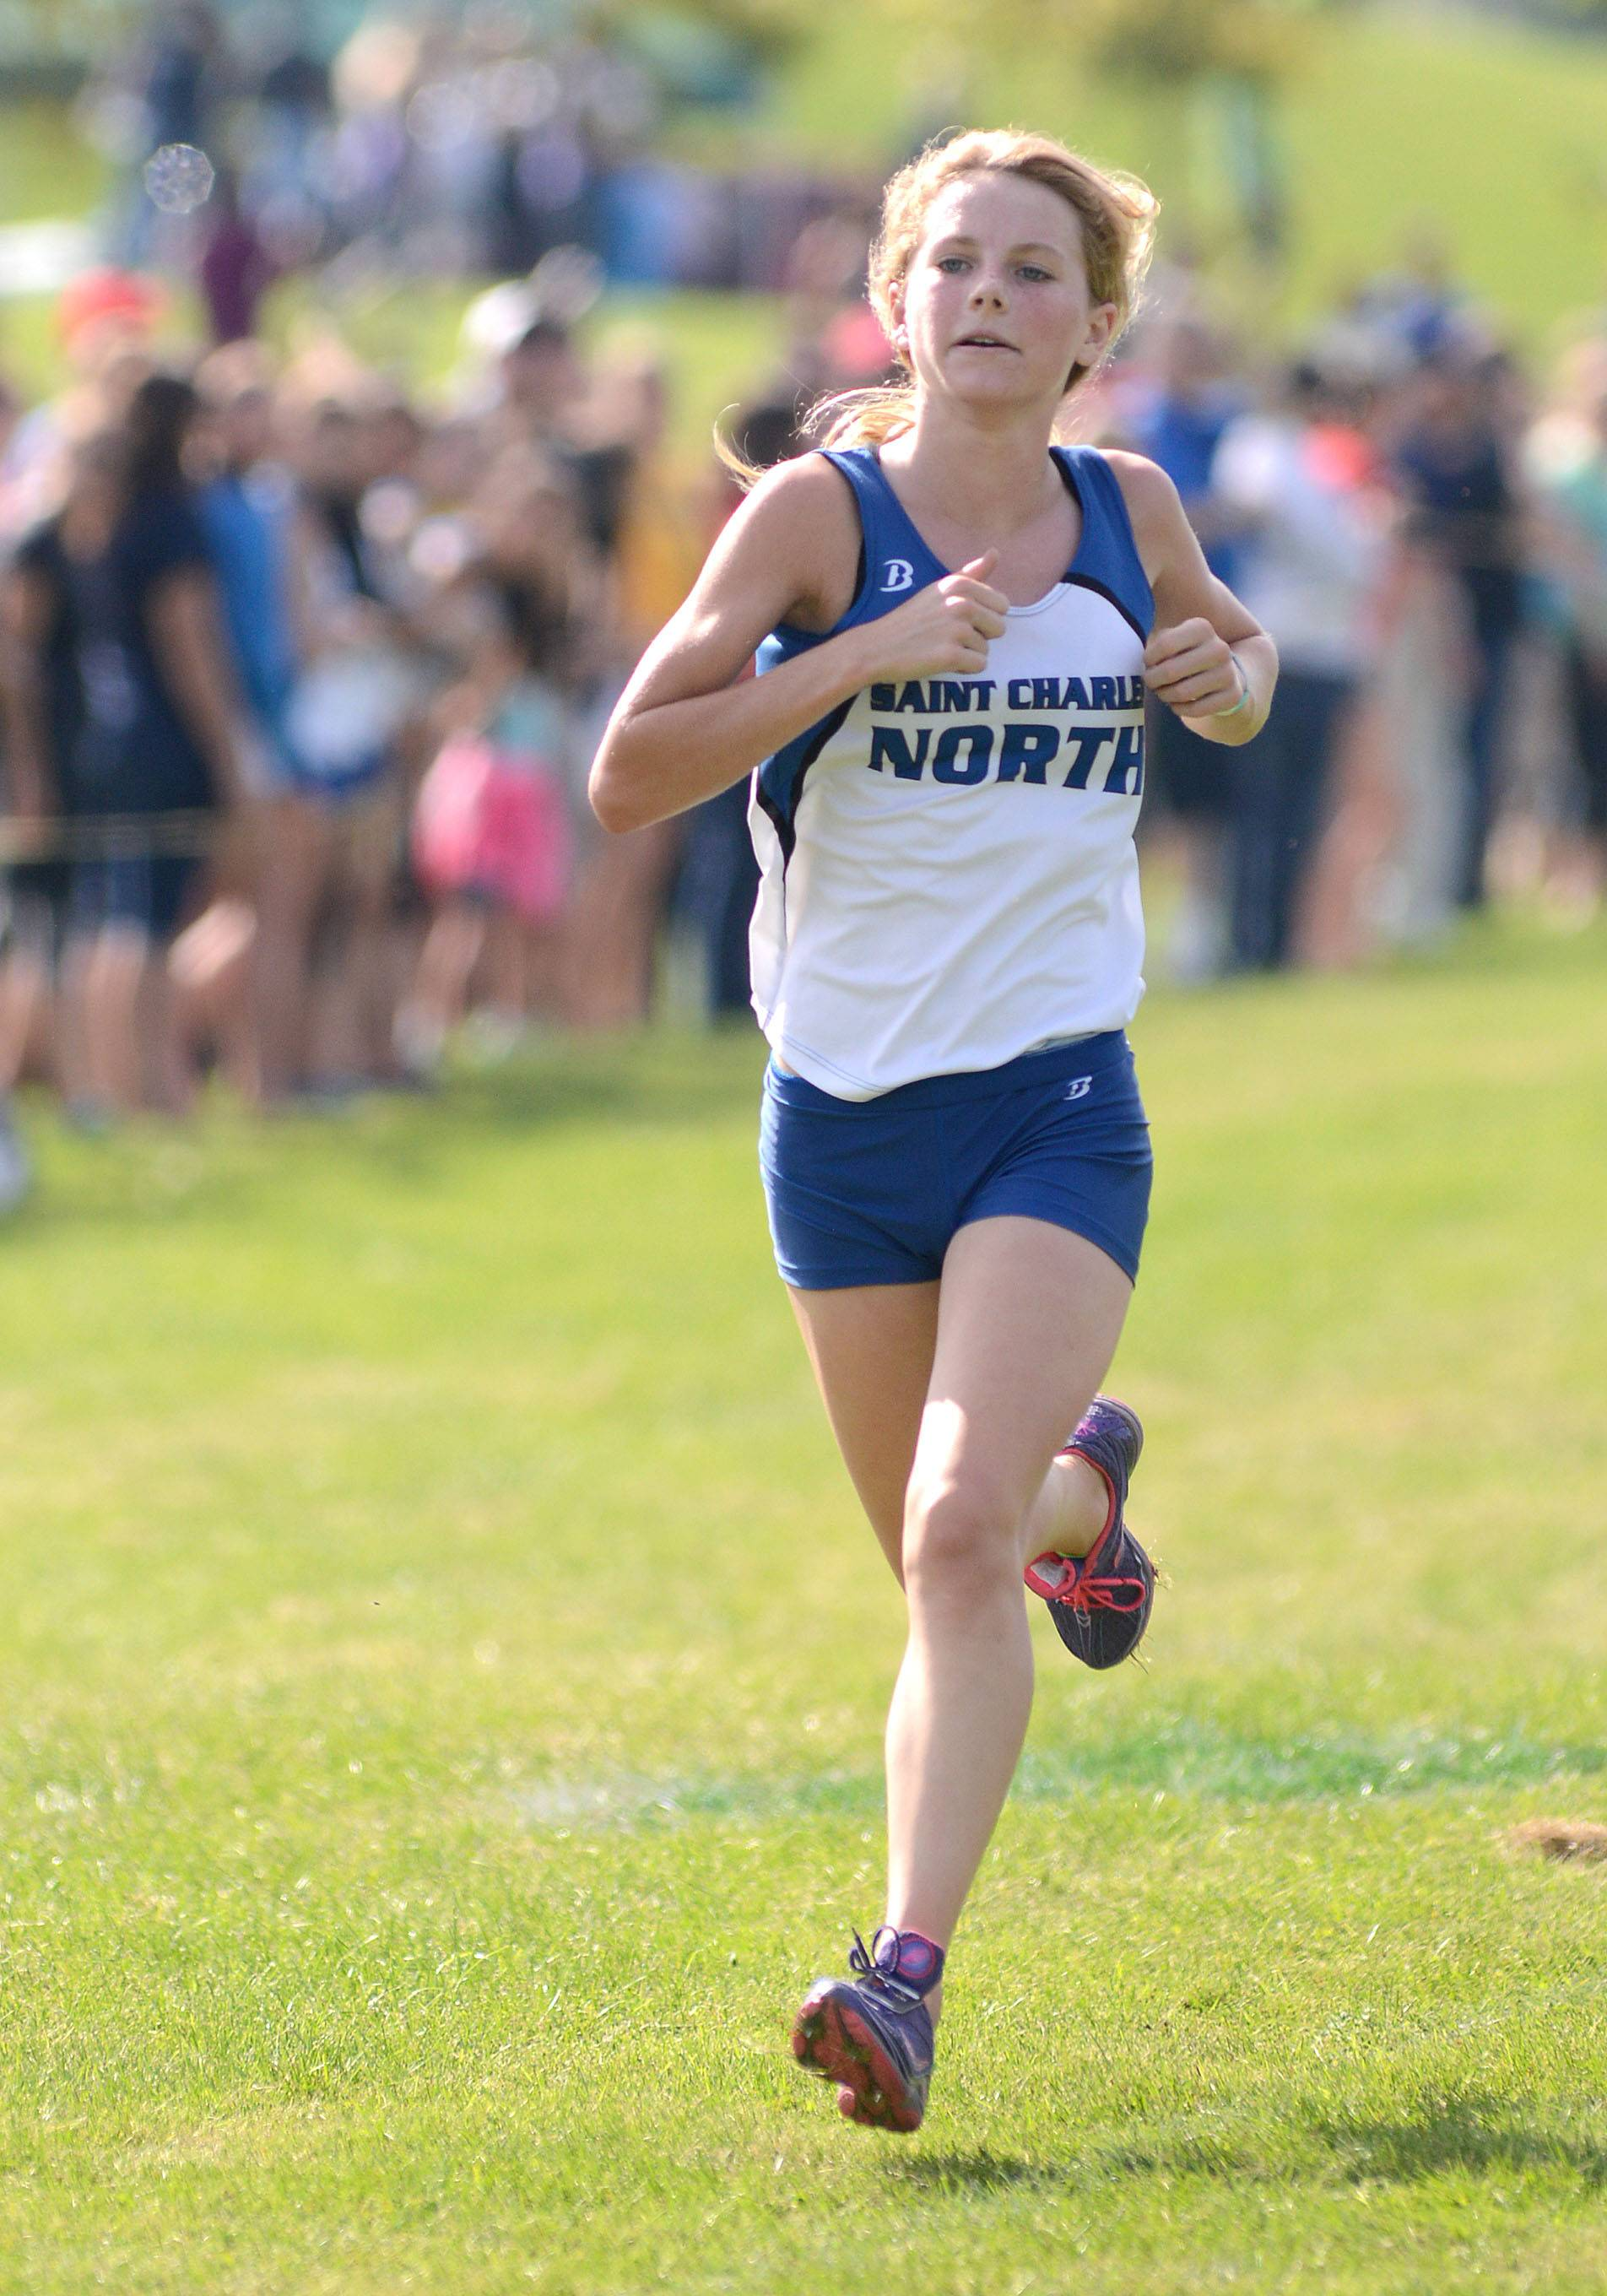 St. Charles North's Audrey Ernst capped a memorable freshman year by taking 13th at the Class 3A state meet.